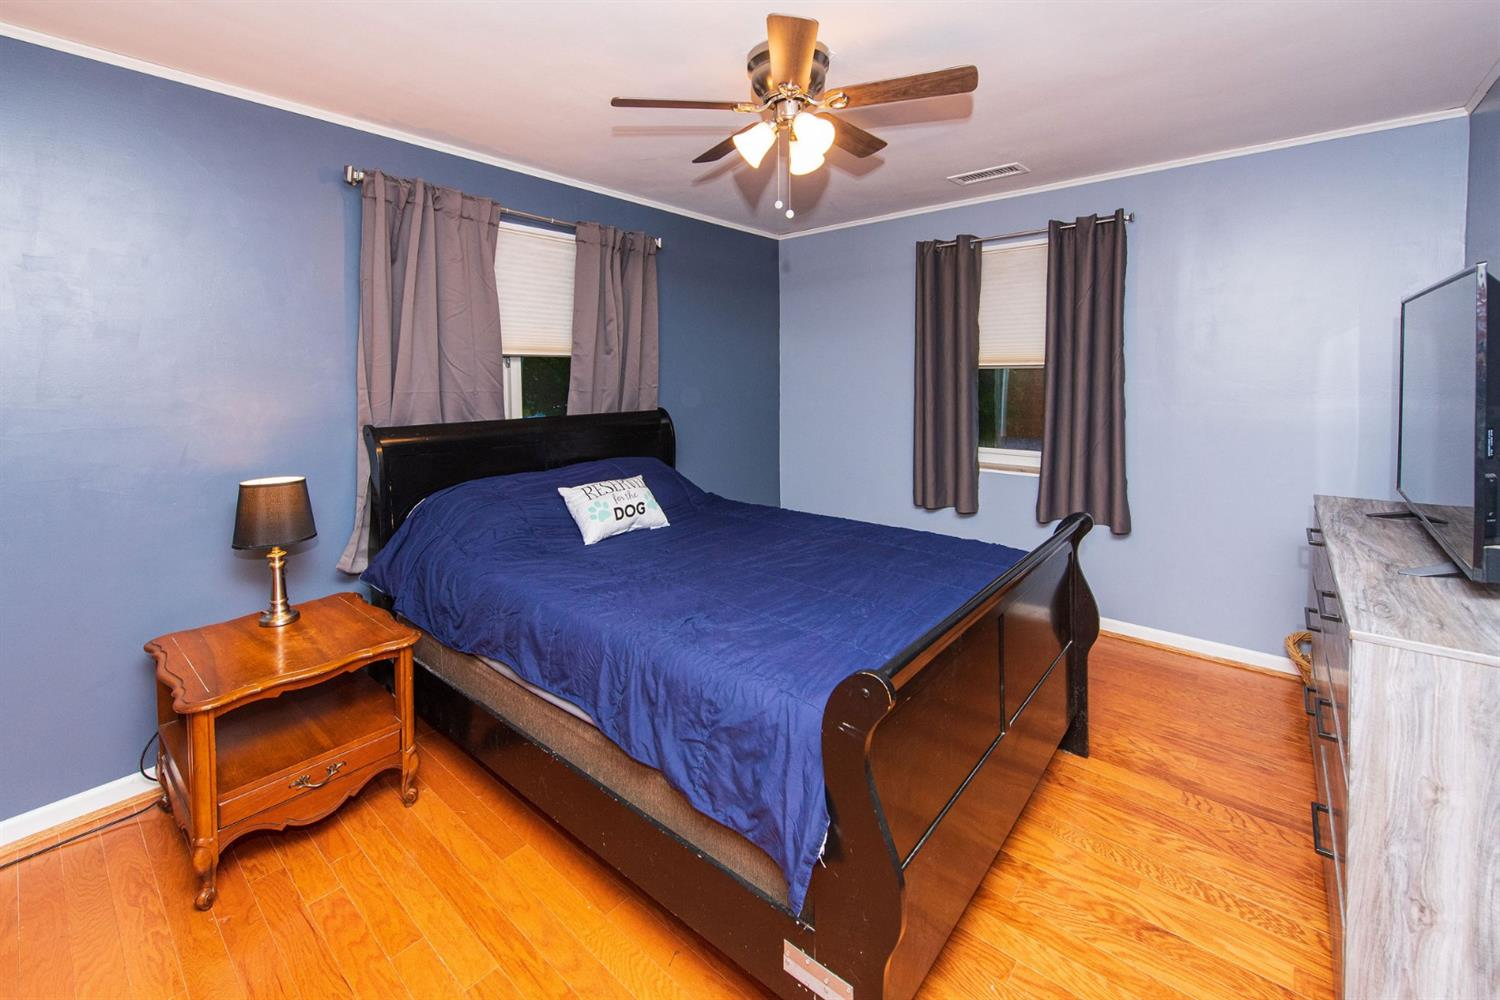 Master bedroom with double closets and Pergo hardwood flooring.